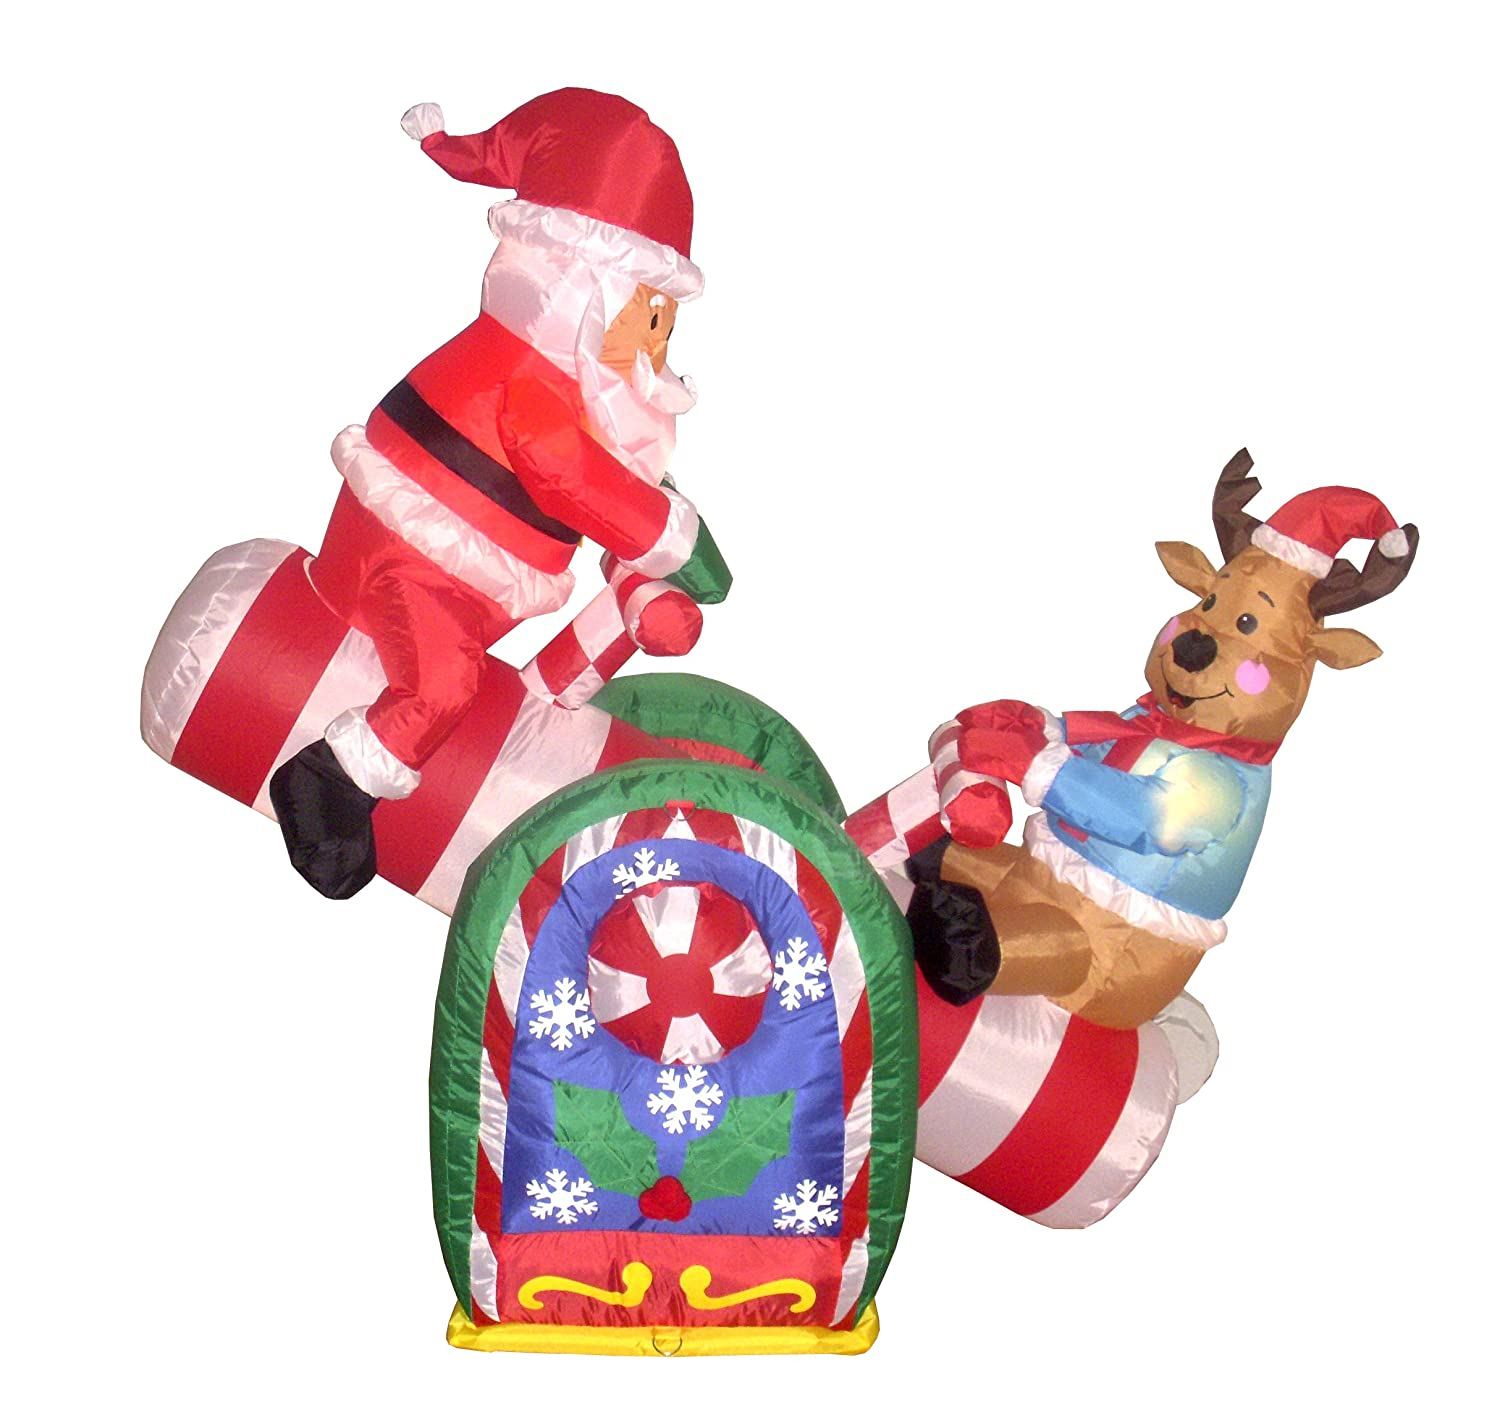 BZB Goods 4 Foot Animated Christmas Inflatable Santa and Reindeer Teeter Totter Lighted Decoration at Sears.com